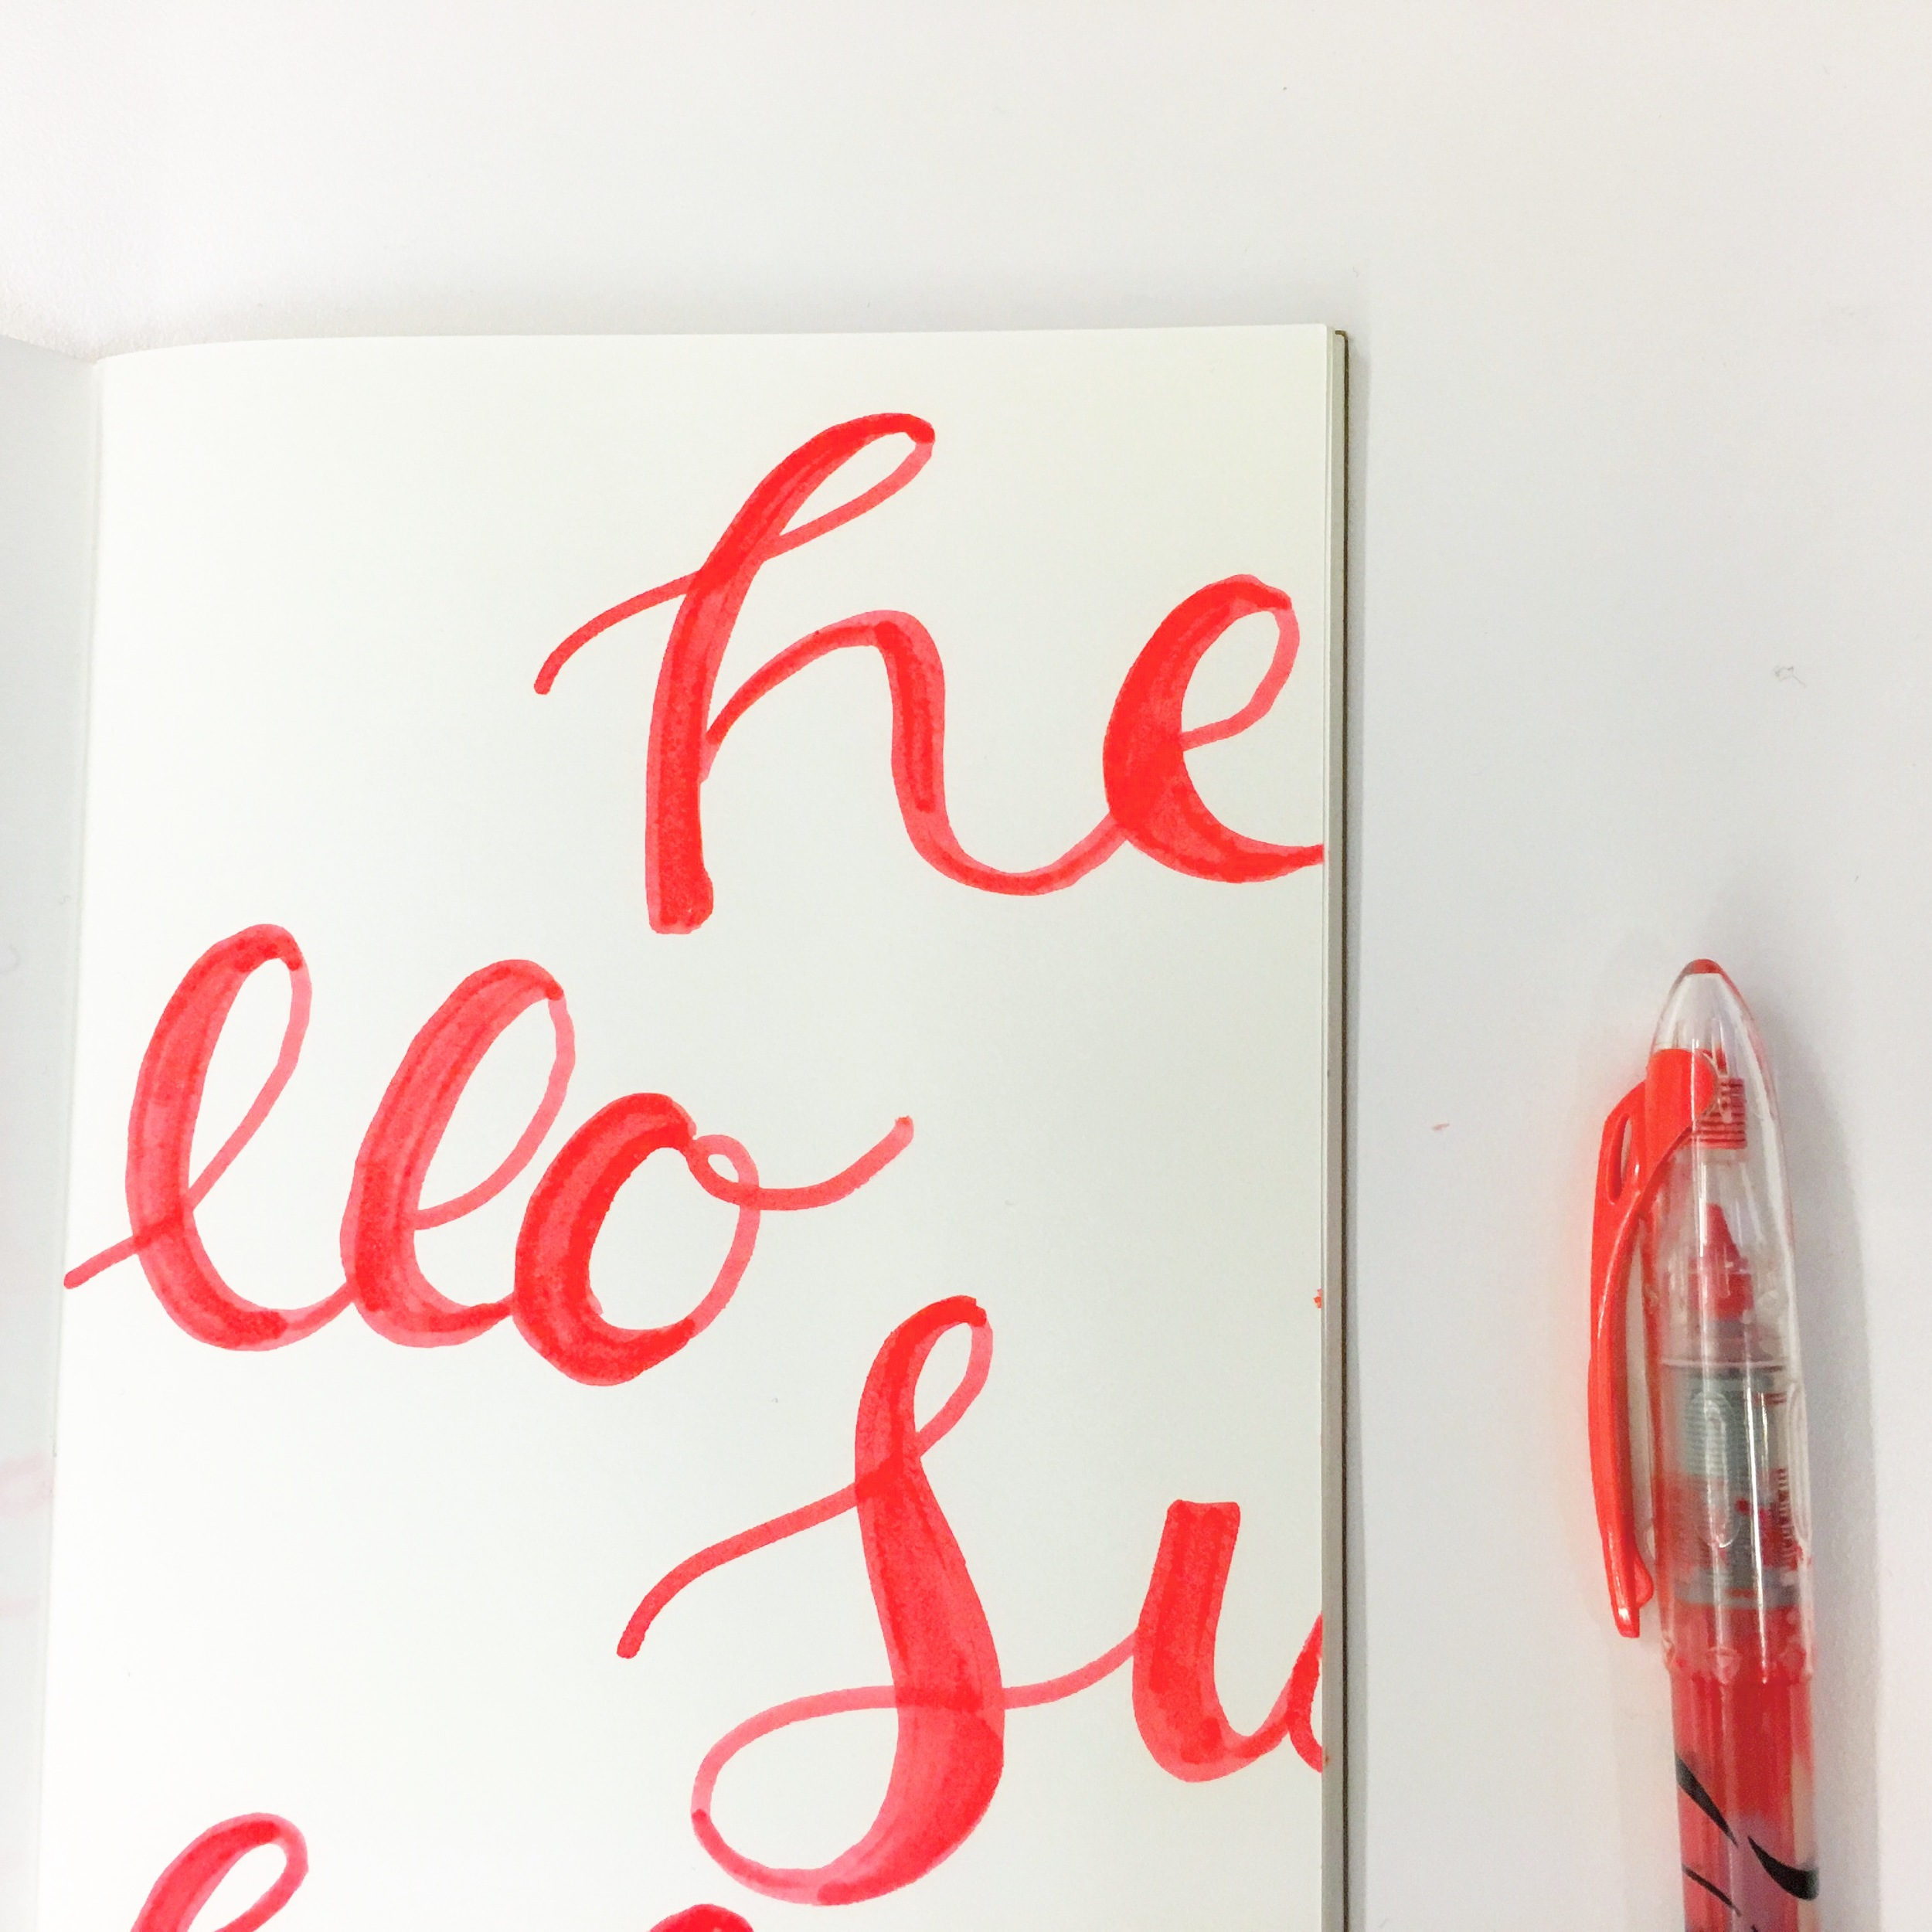 A little slow time in the office today means working out some calligraphy ideas and broken type inspirations